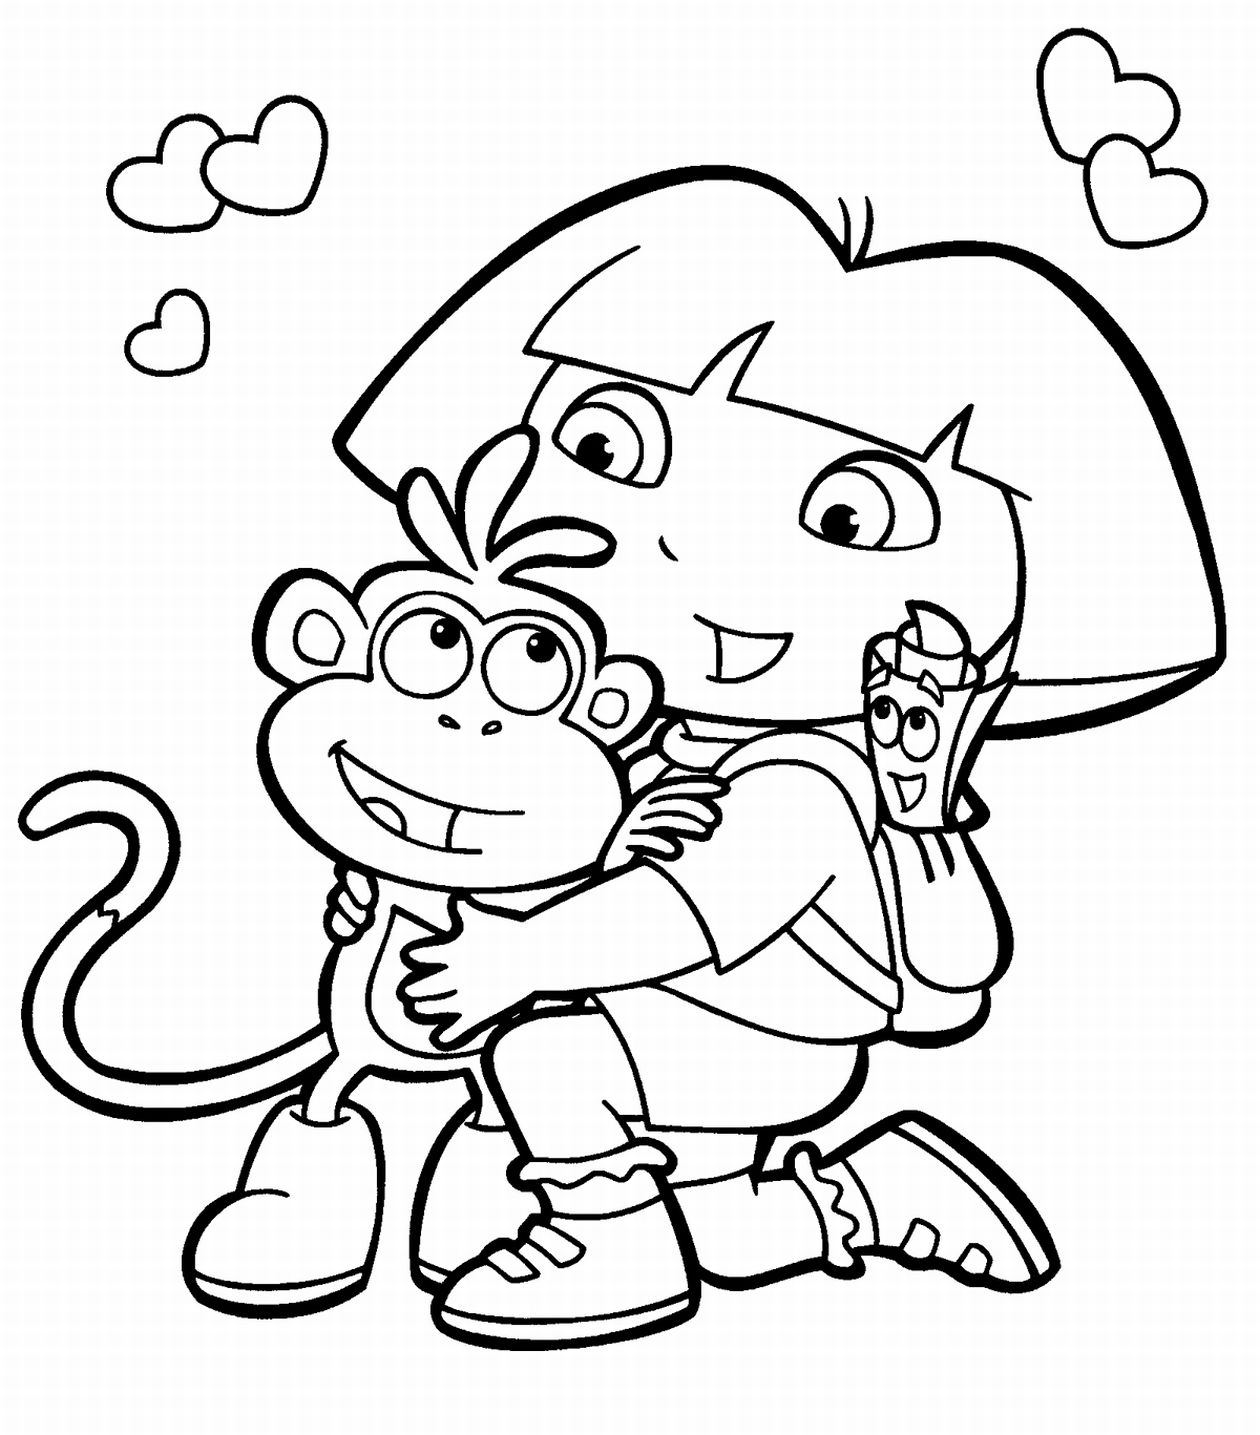 dora coloring page interactive magazine dora coloring pages page dora coloring